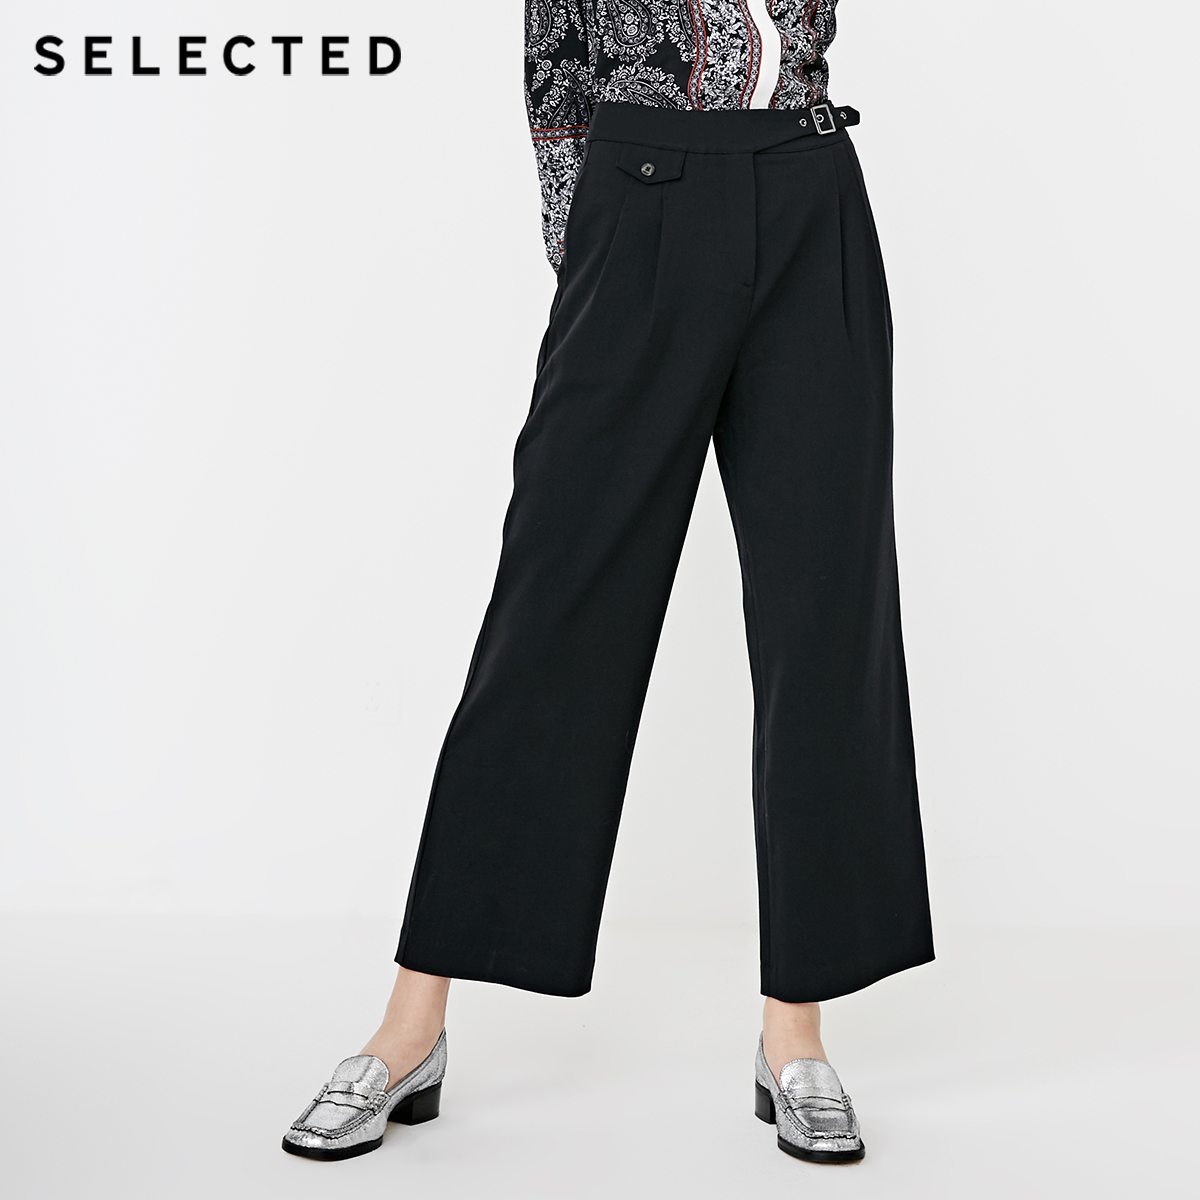 SELECTED Women s High rise Wide leg Casual Crop Pants S 418414514